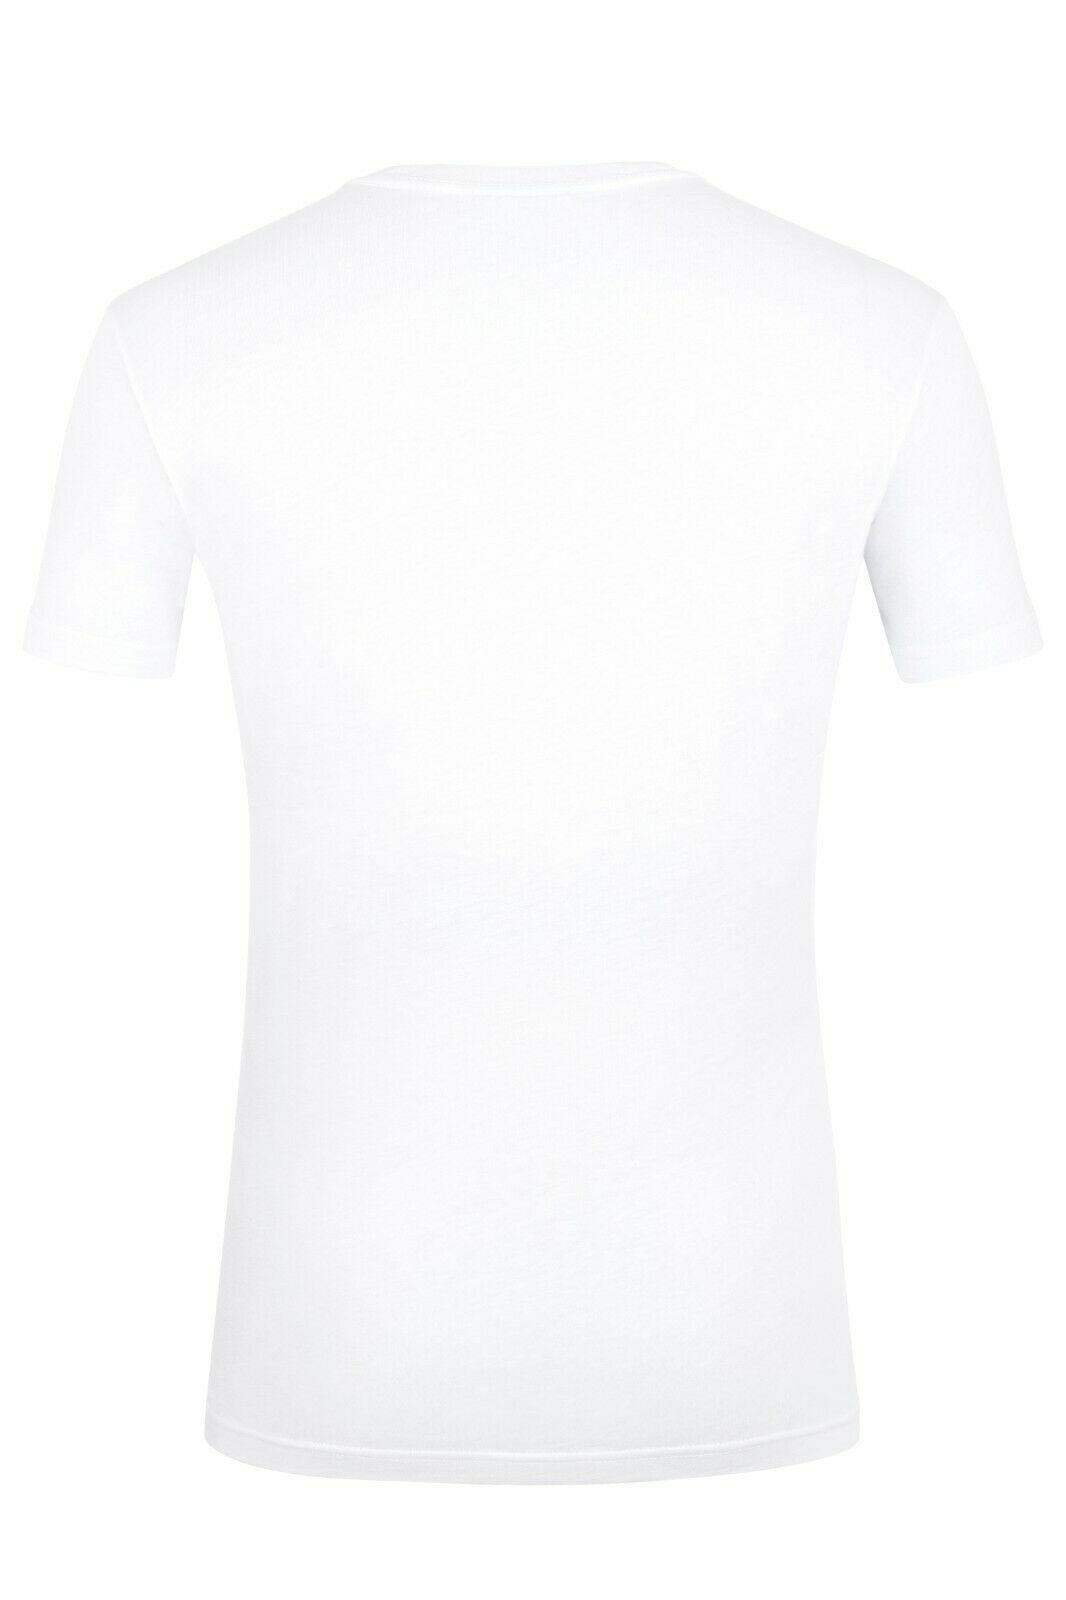 Versace T-Shirt Color White Material Cotton